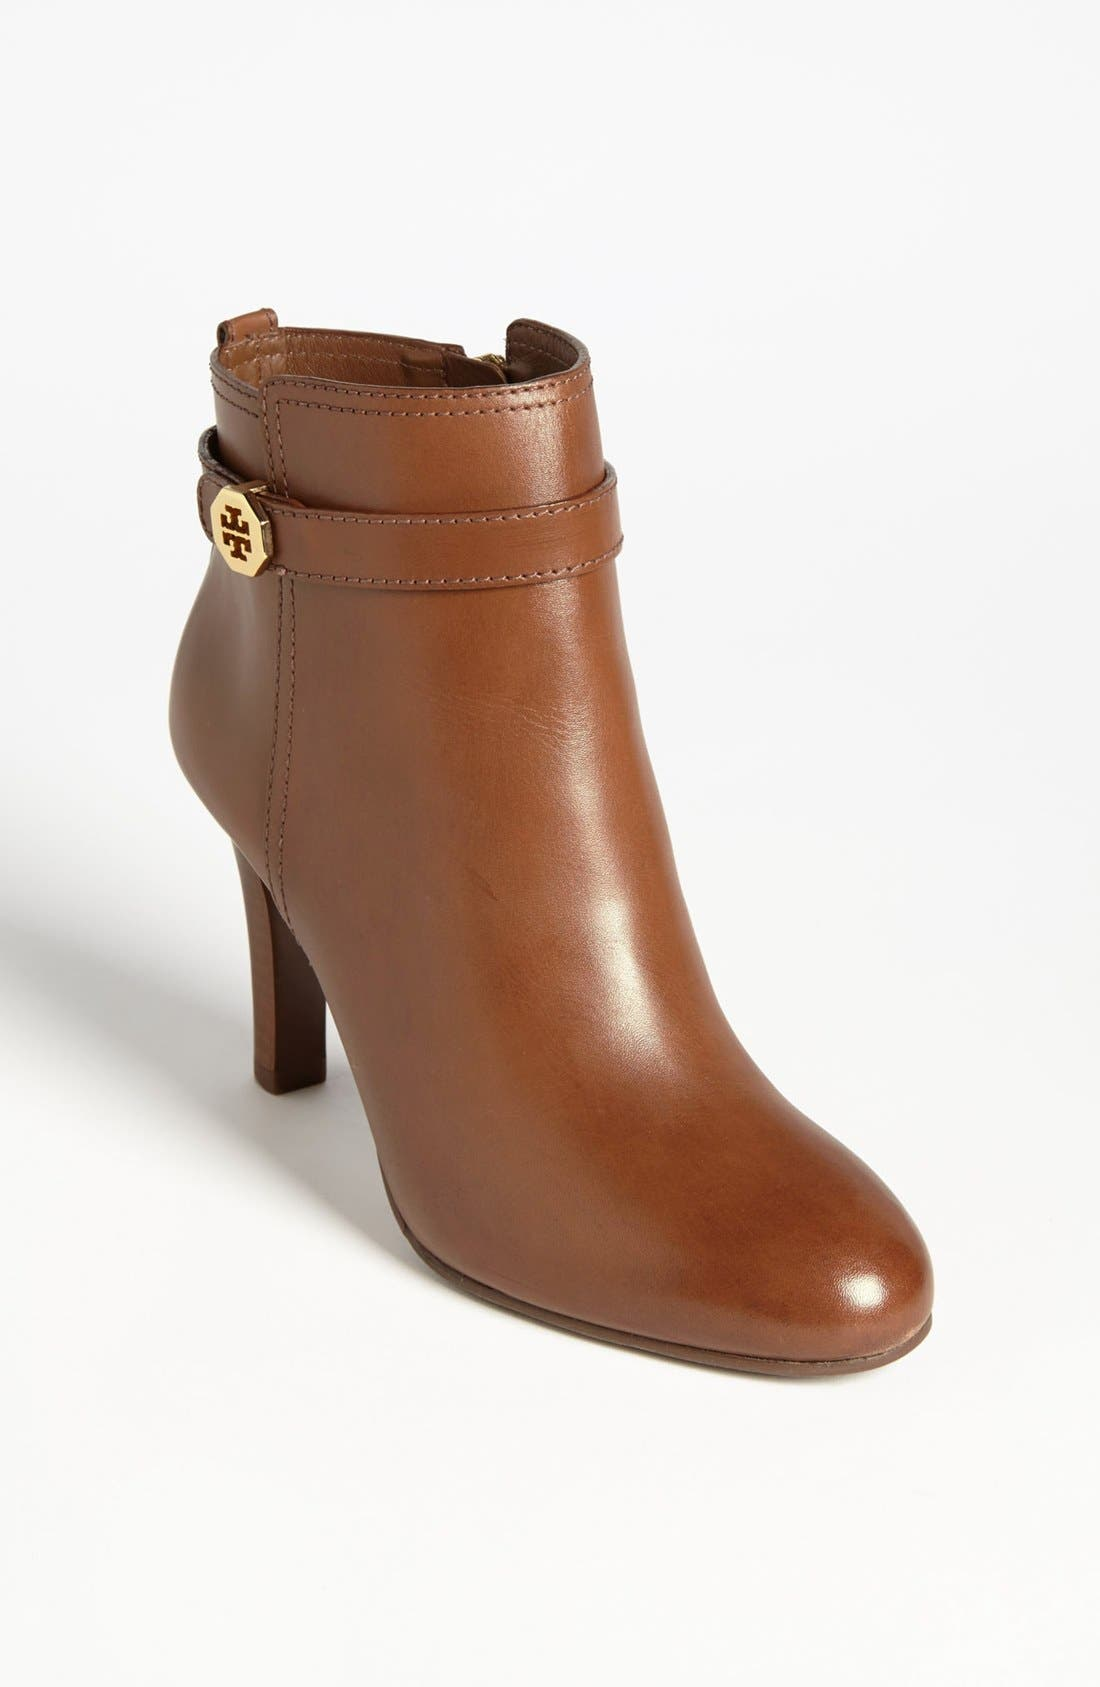 Alternate Image 1 Selected - Tory Burch 'Brita' Bootie